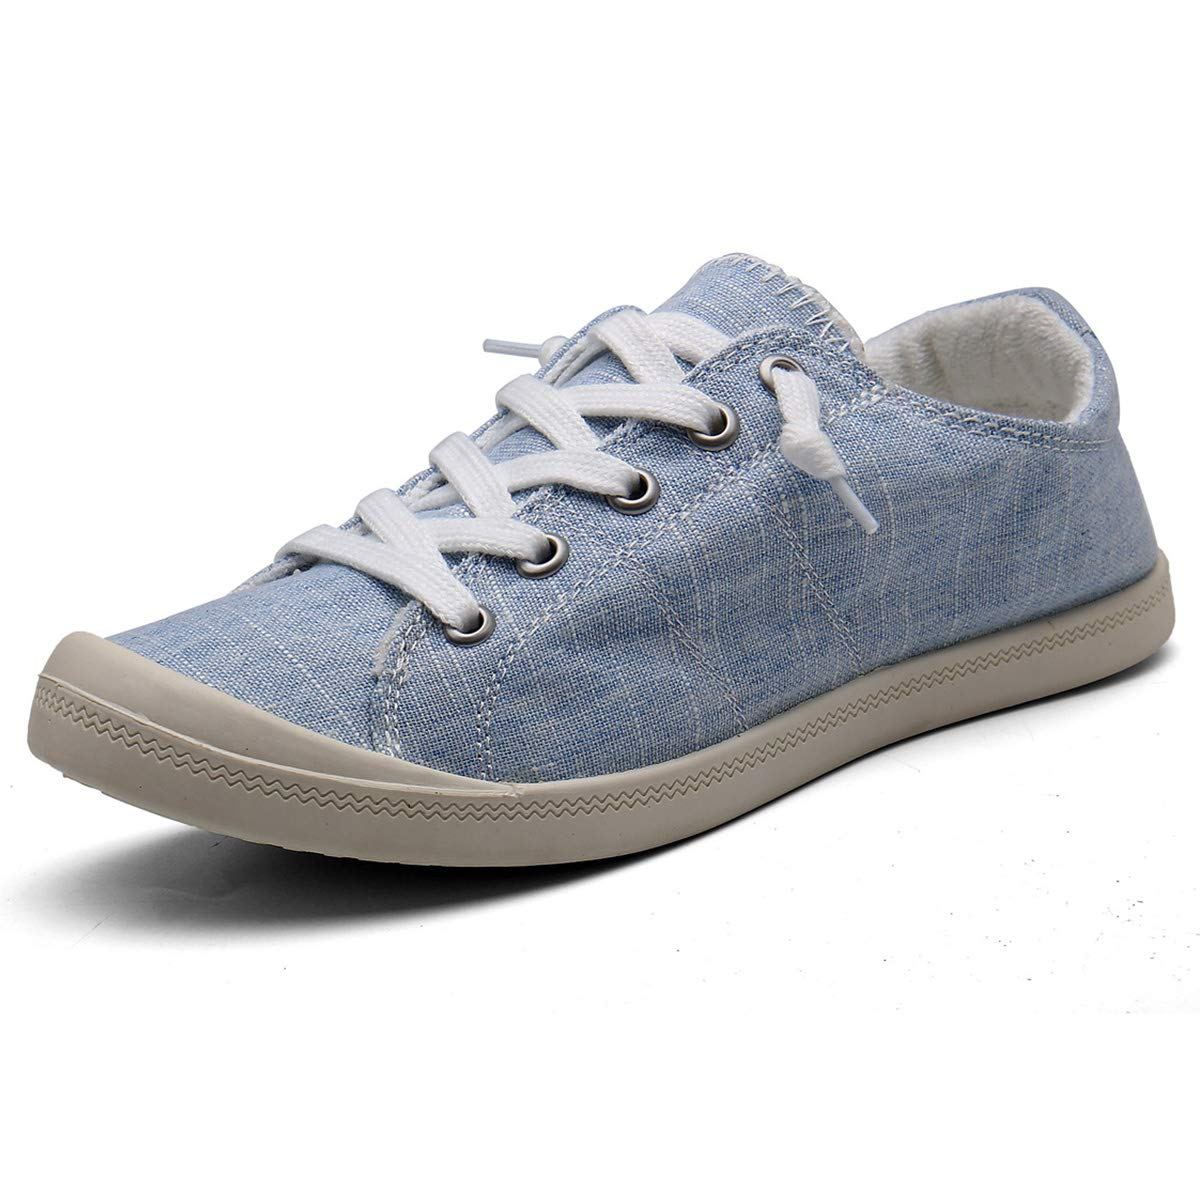 Blue and White Canvas Shoes